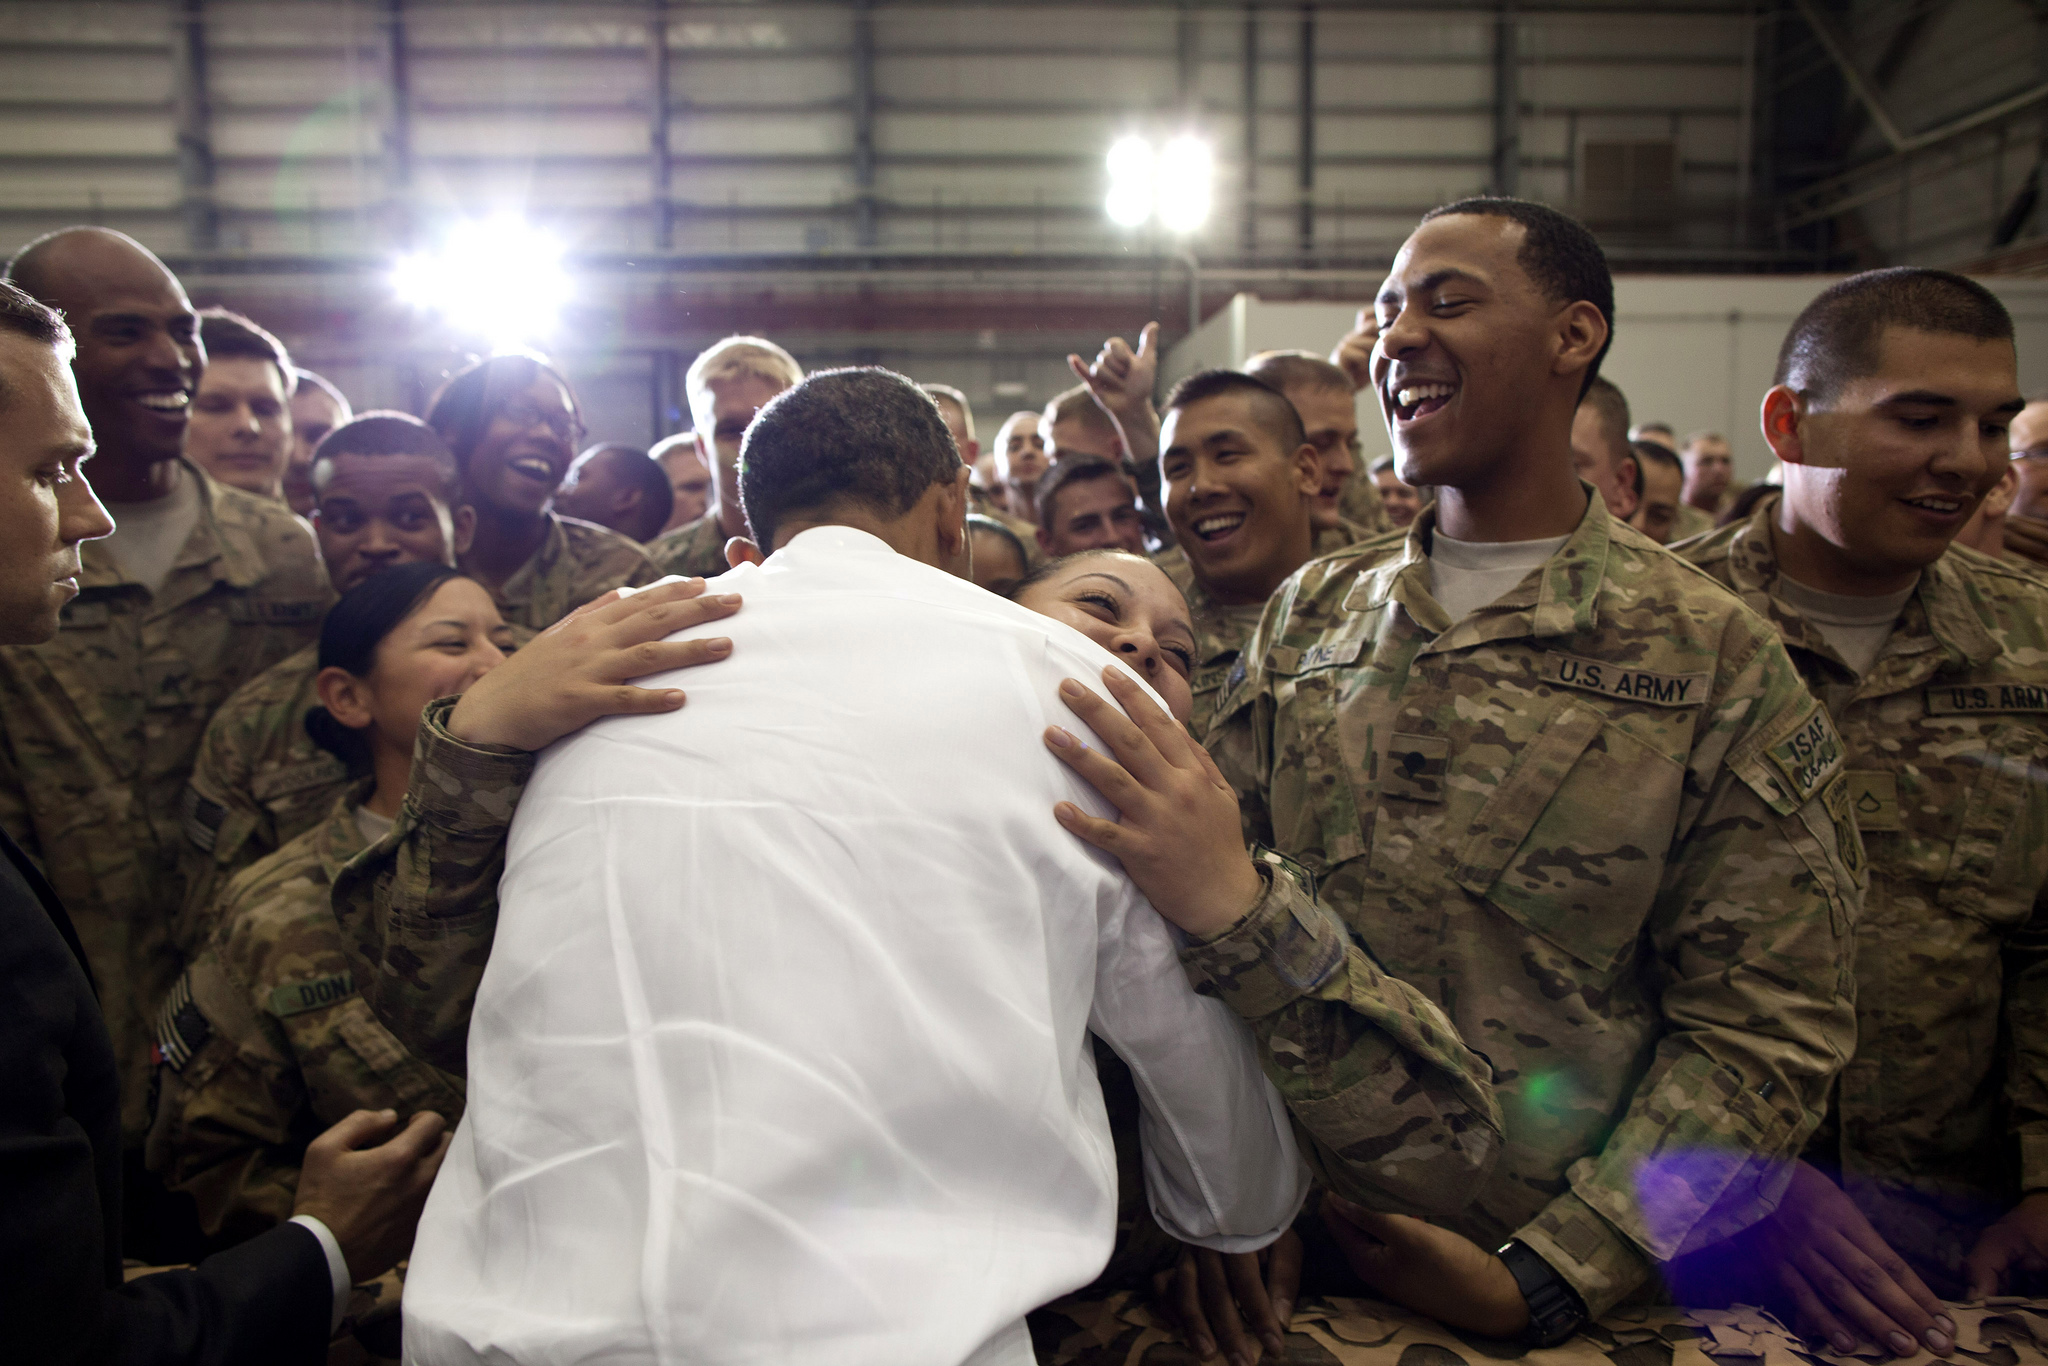 President Barack Obama greets U.S. troops in Afghanistan (May 1, 2012)